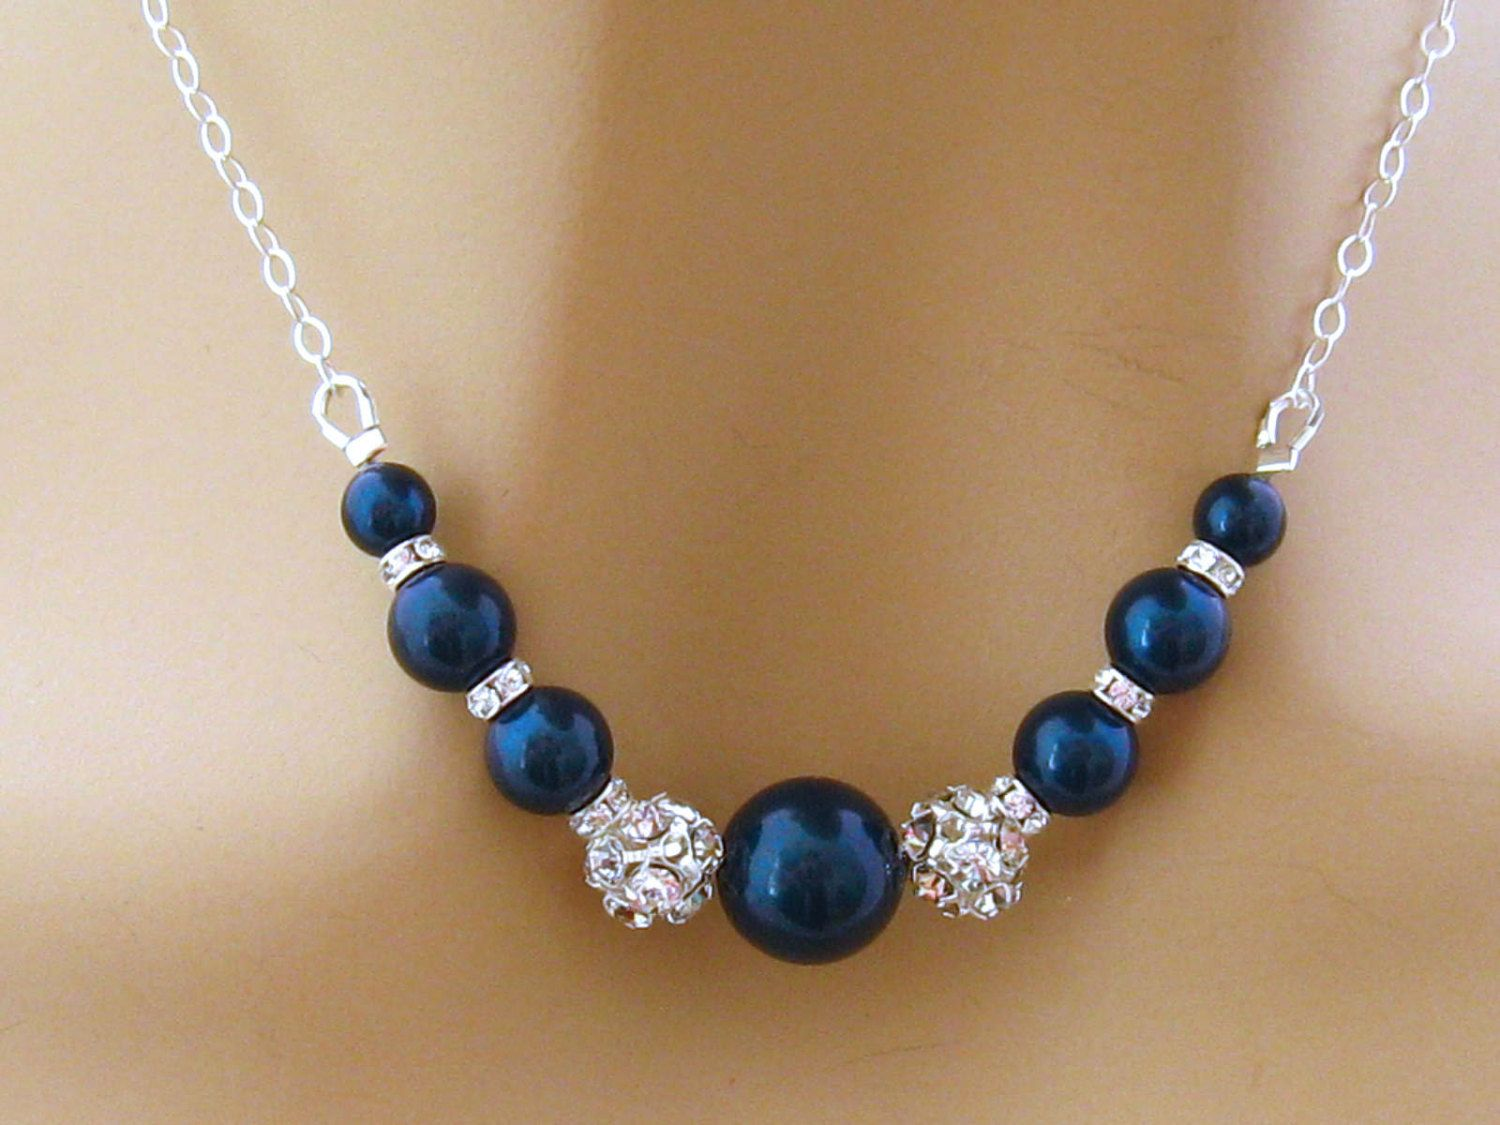 Blue Pearl Necklace Rhinestone Bridal Bridesmaid Mother Of The Bride Jewelry Wedding By Martywhitedesigns